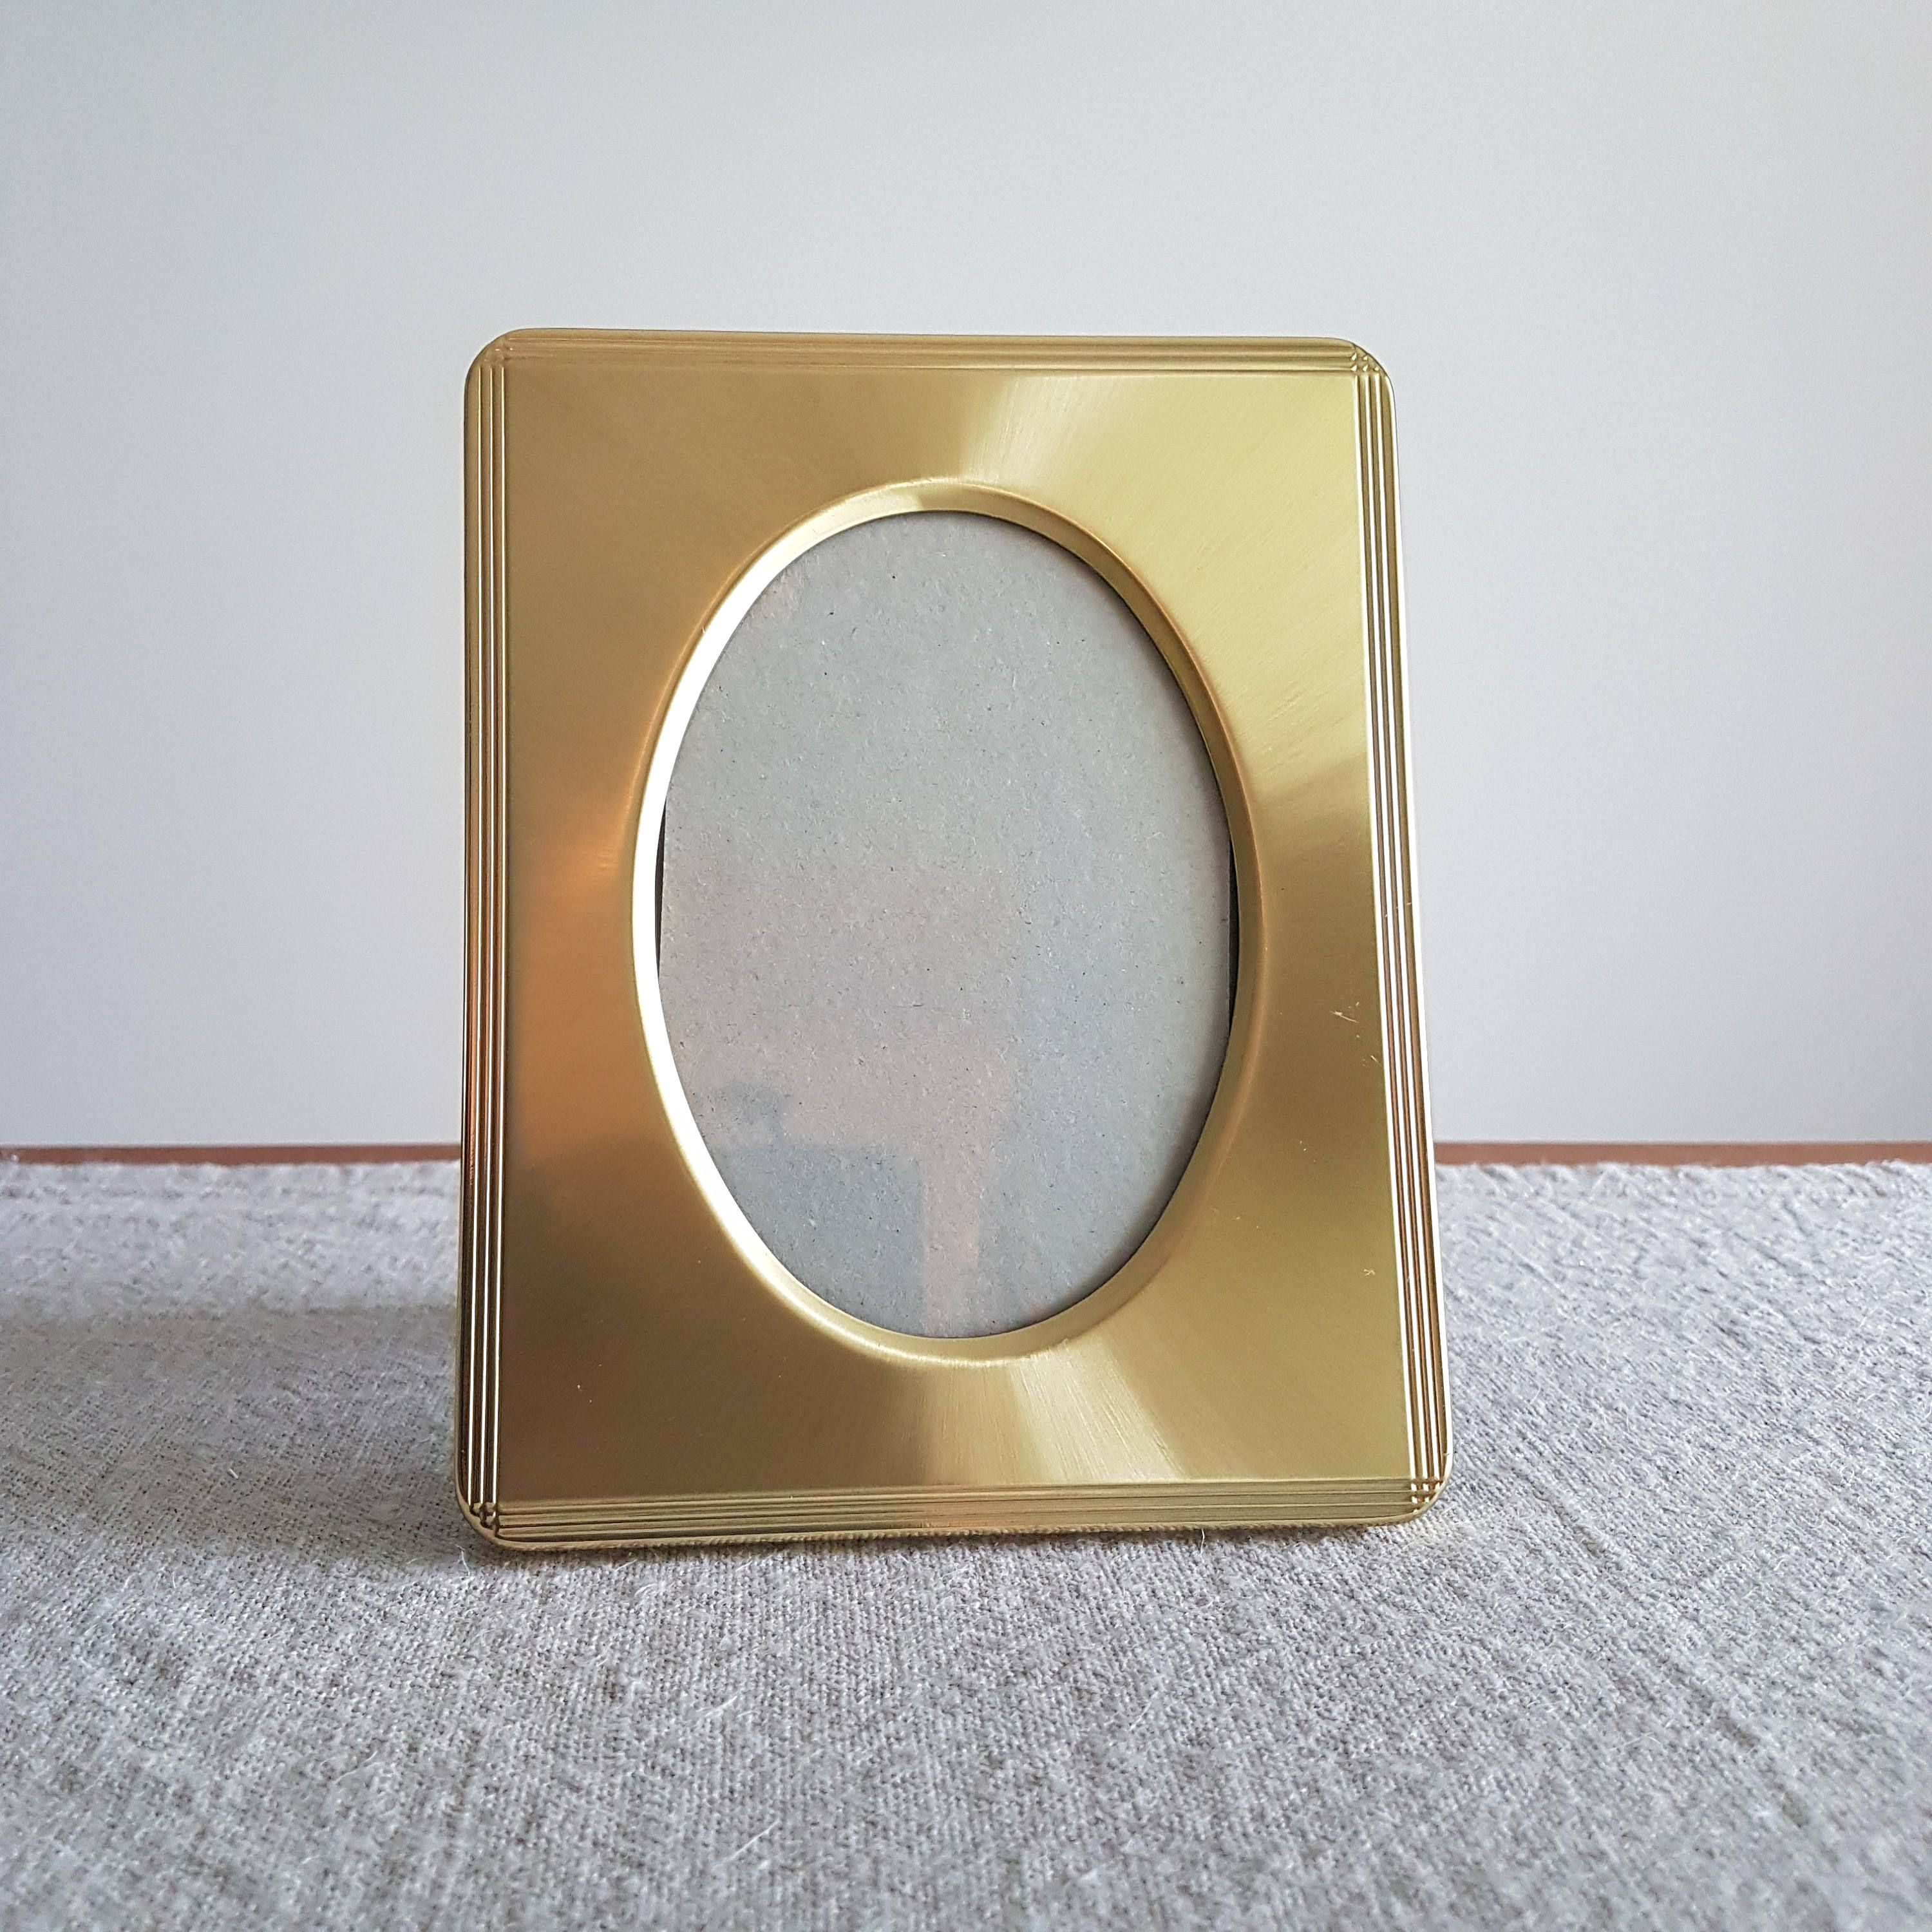 Miniature solid brass picture frame double heart shaped apertures x solid brass oval metal picture frame gold metal photo frame special family photos traditional boho decor 8 x 12 cm by bluechickenvintage on etsy jeuxipadfo Image collections